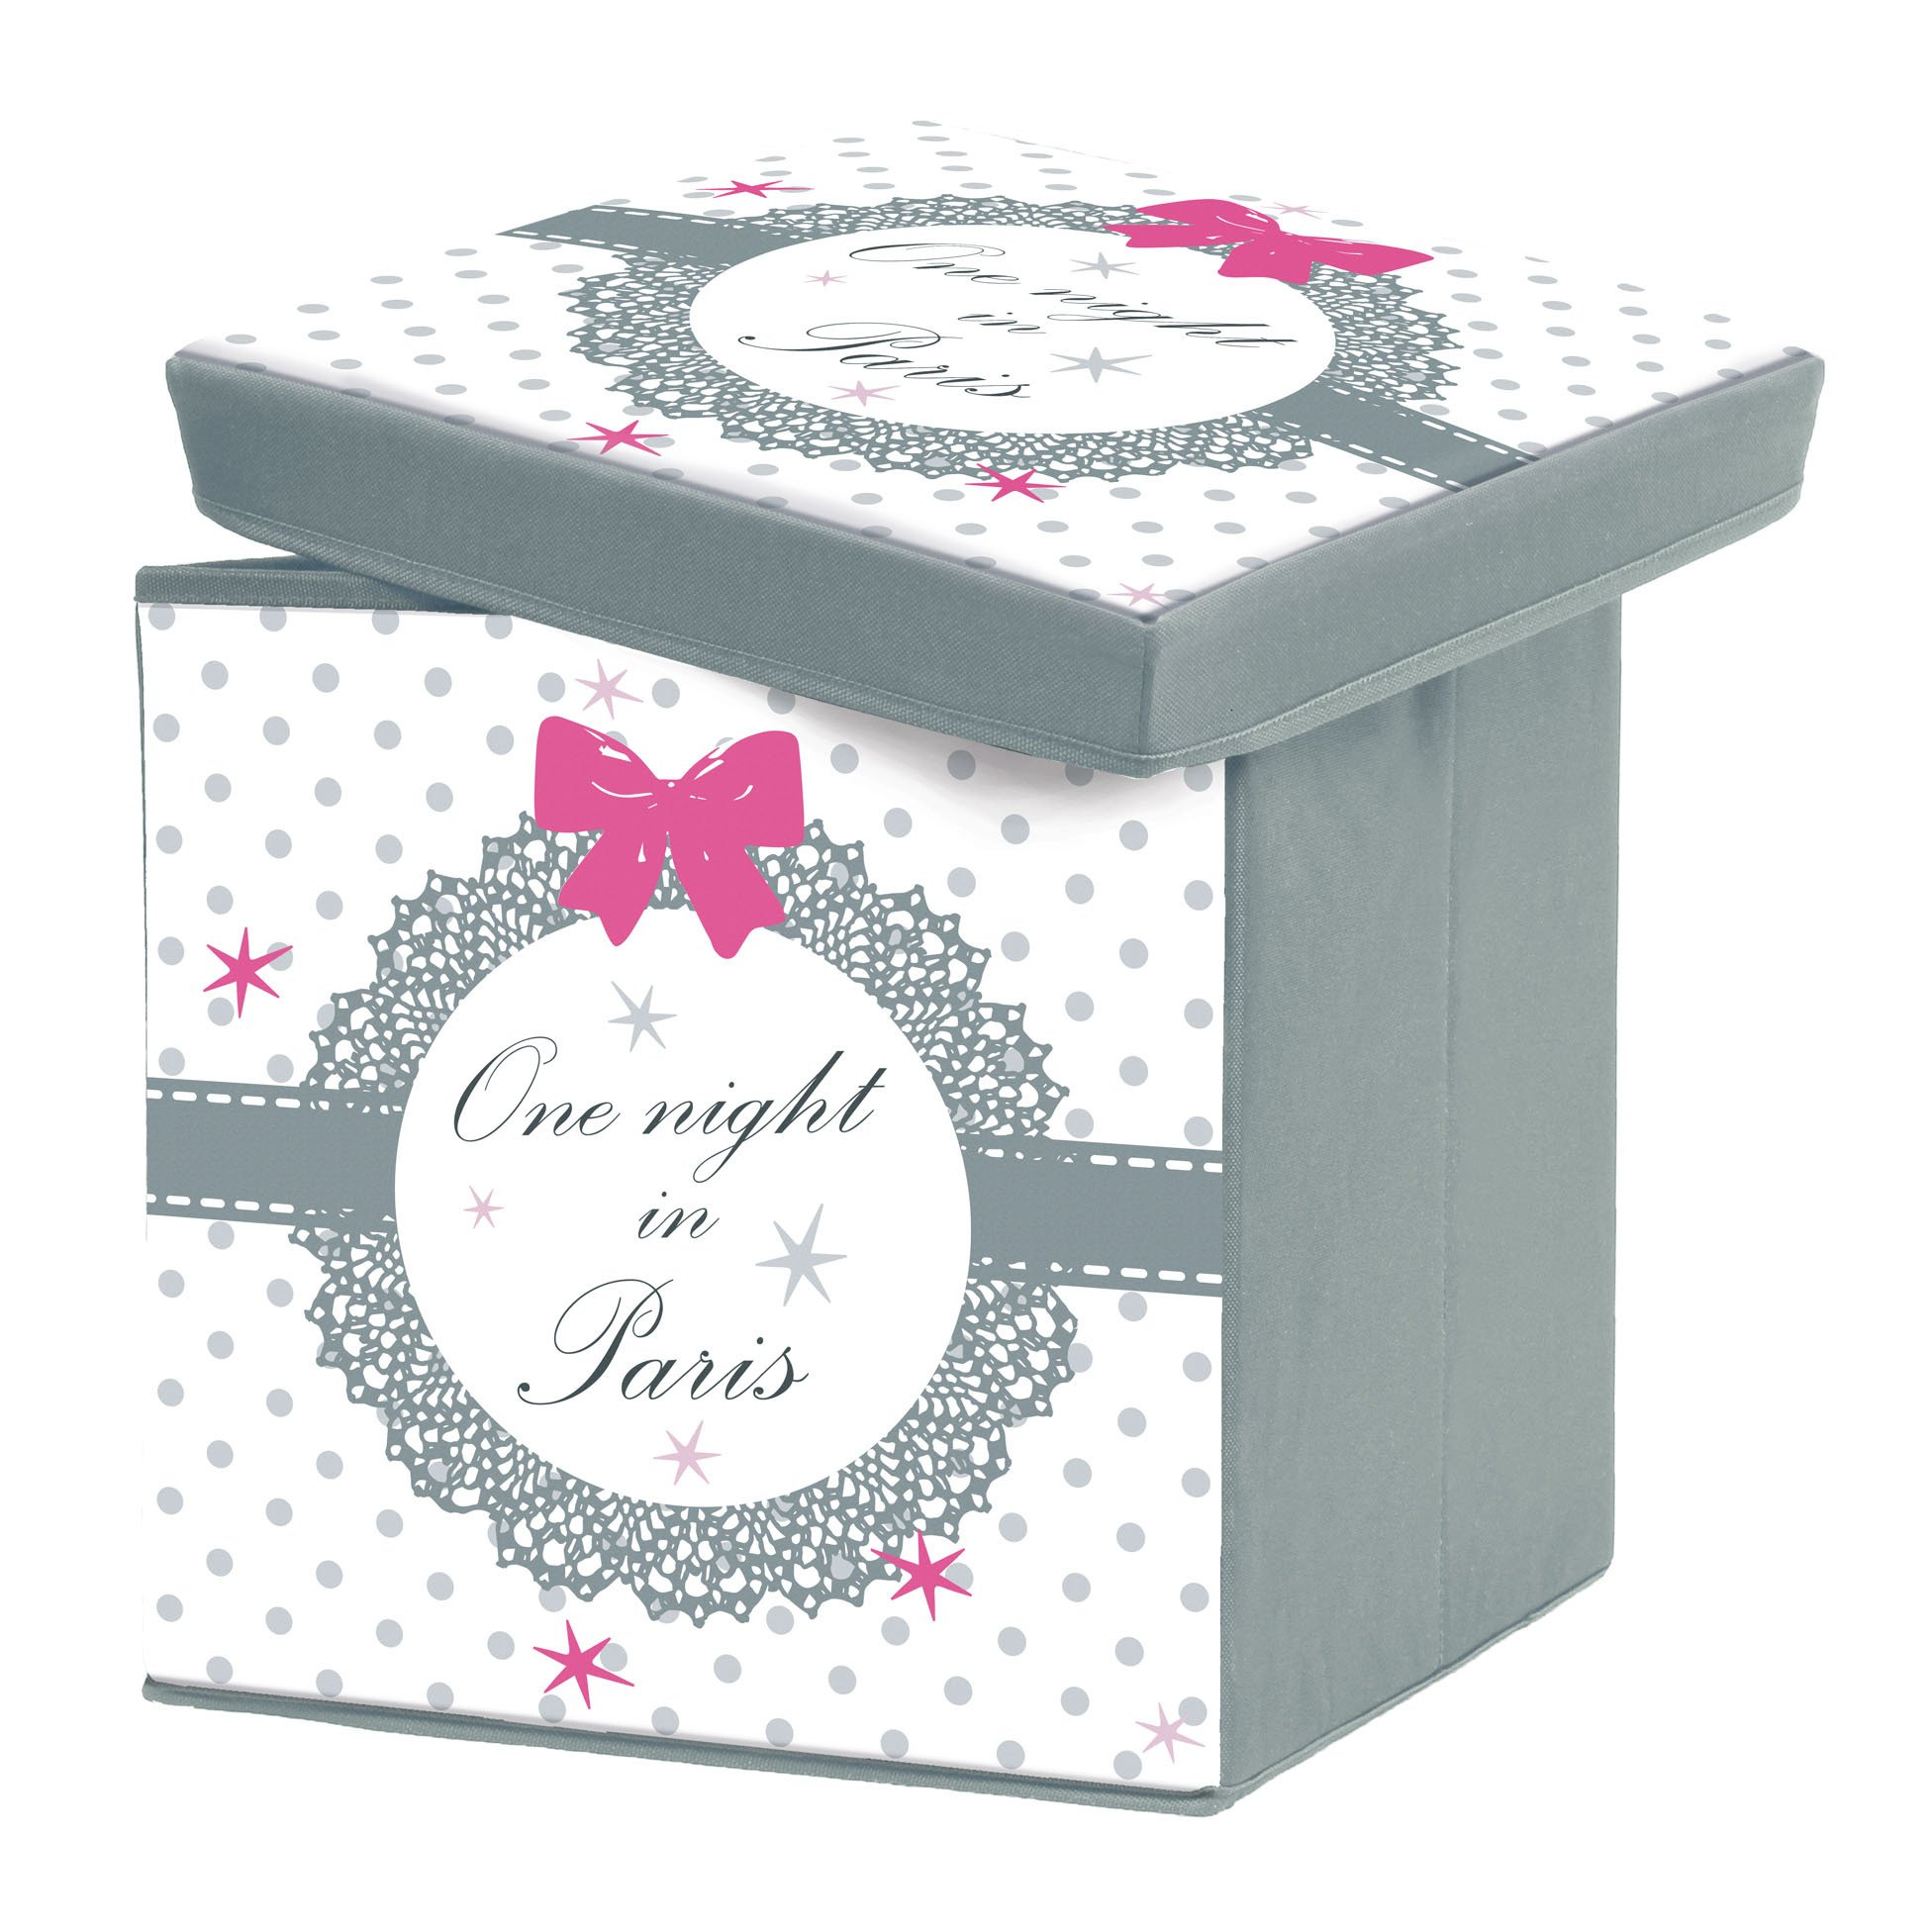 Charming and softness 1721803 Paris Love Storage Box Foldable Polyester Print 38 x 38 x 38 cm by Charme et Douceur (Image #1)